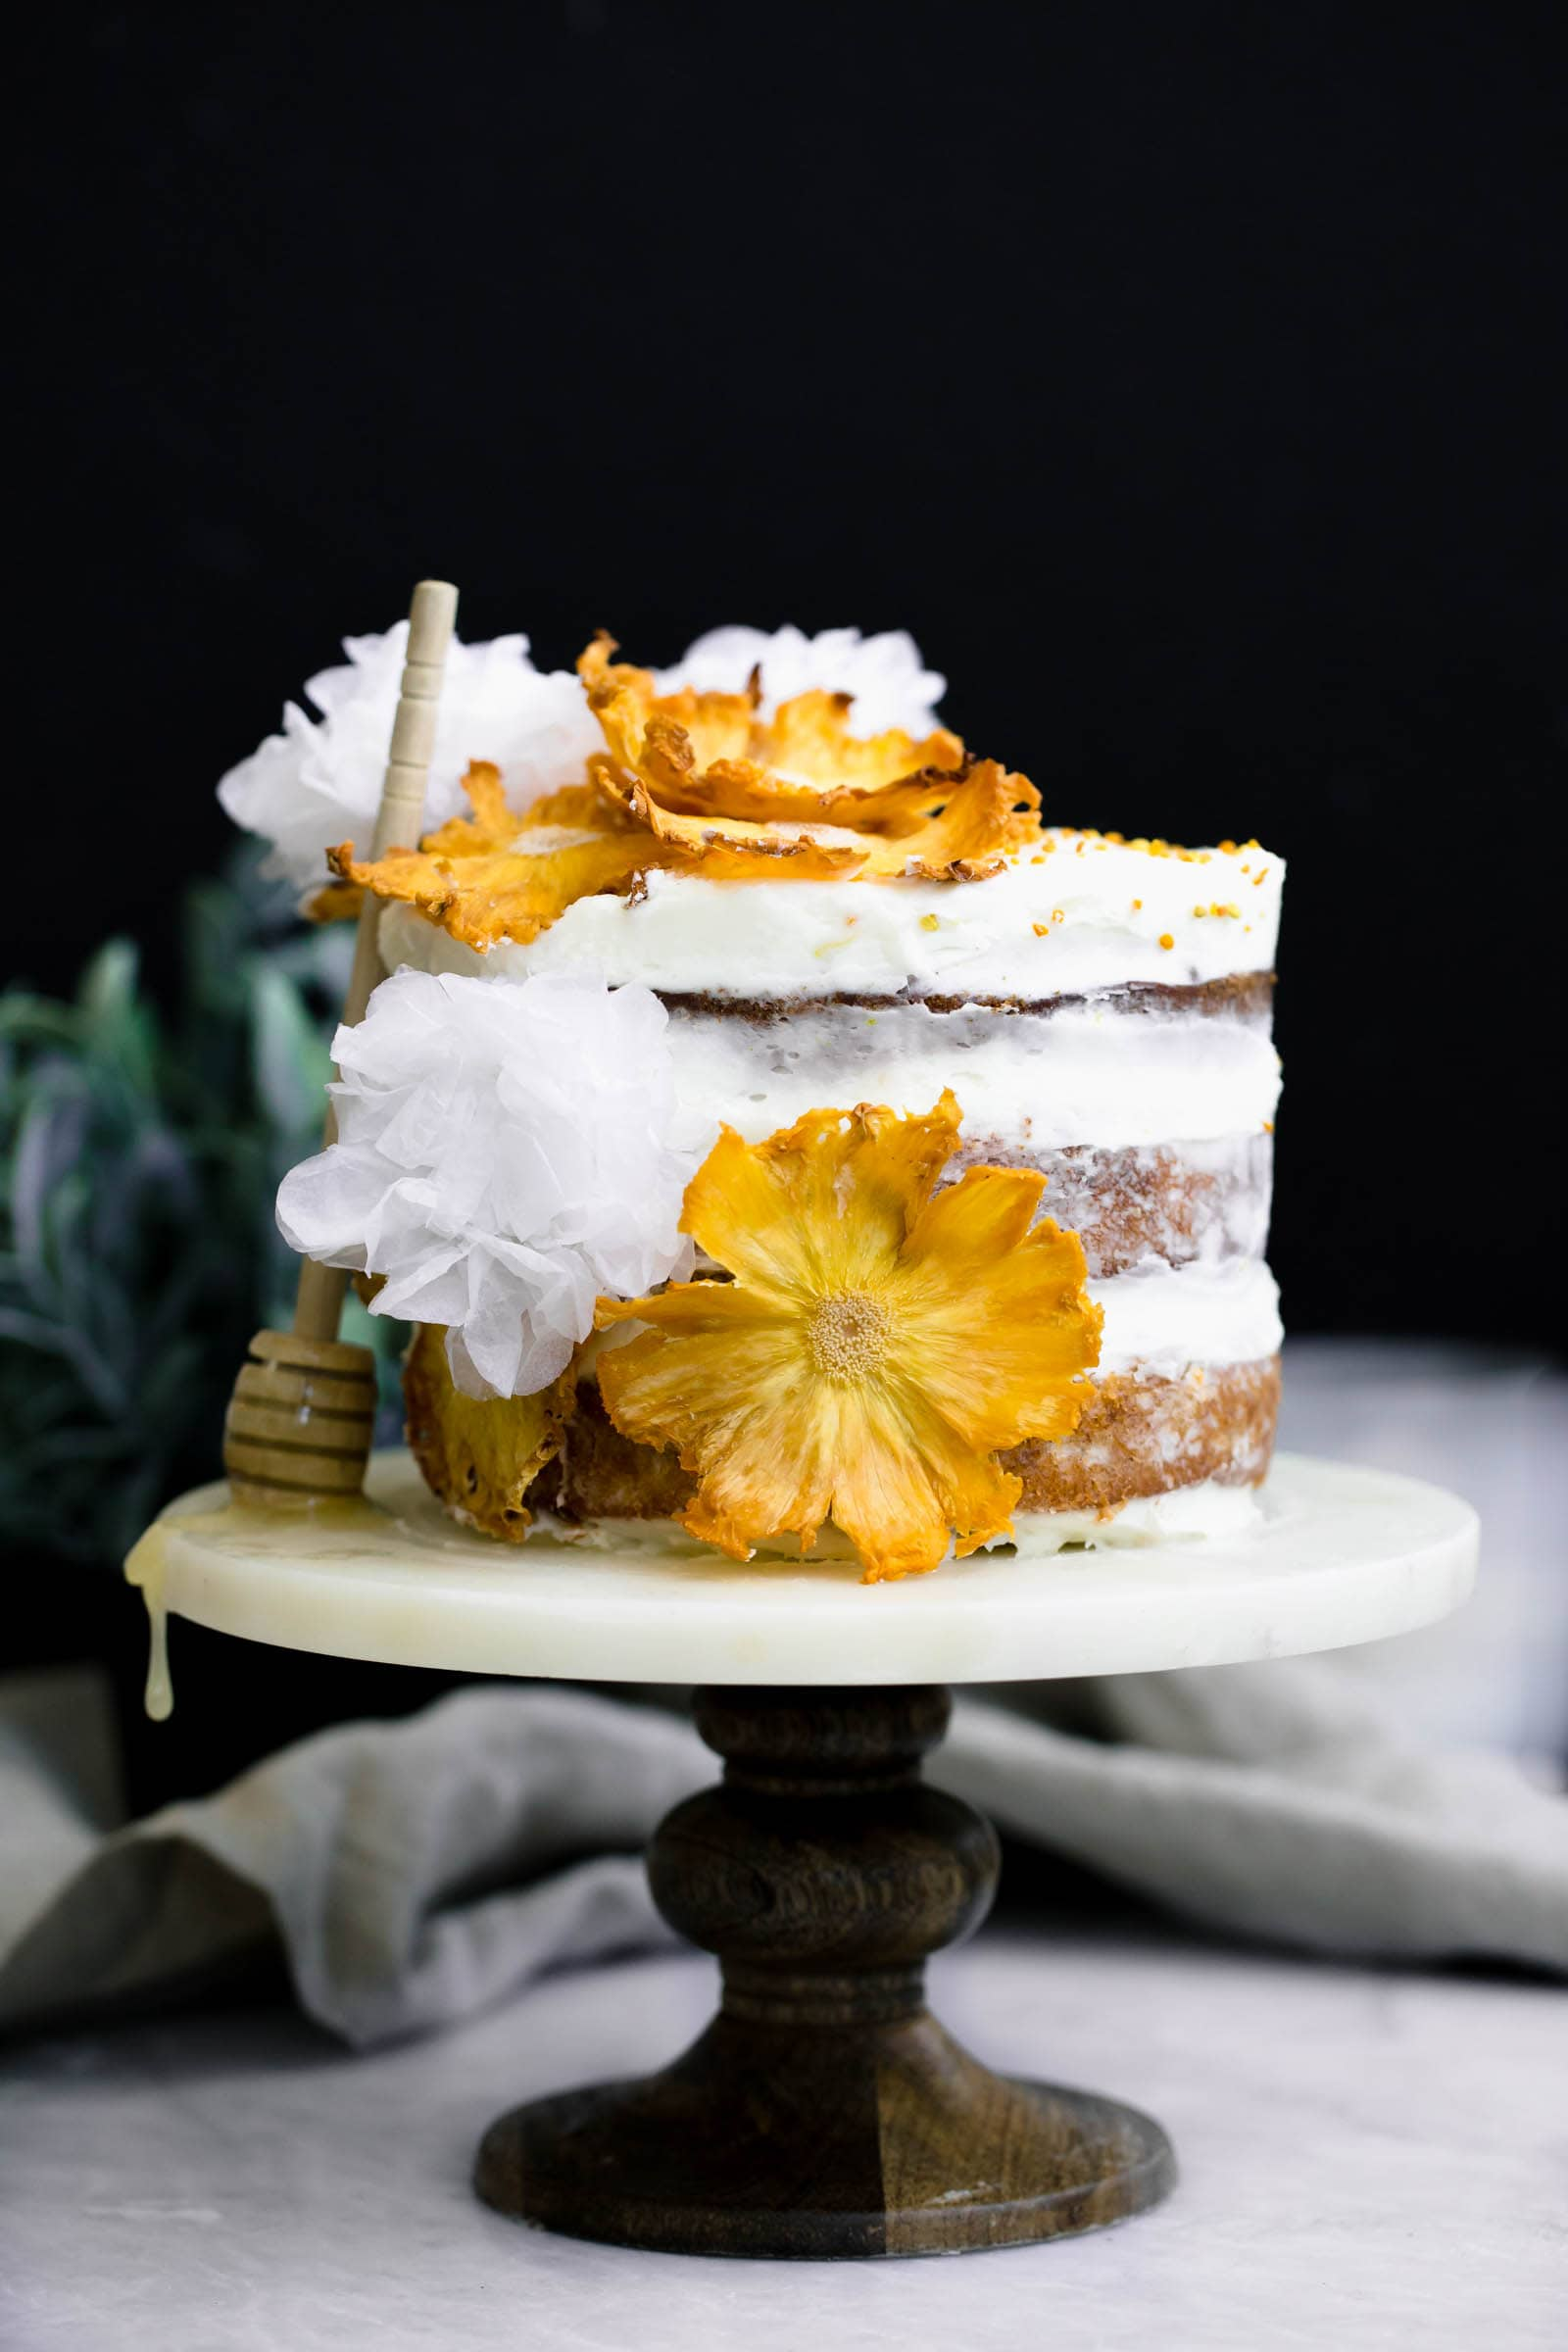 With a name like Hummingbird Cake, you know it has to be good. This southern combination of banana and pineapple in a cake is a total crowd-pleaser!